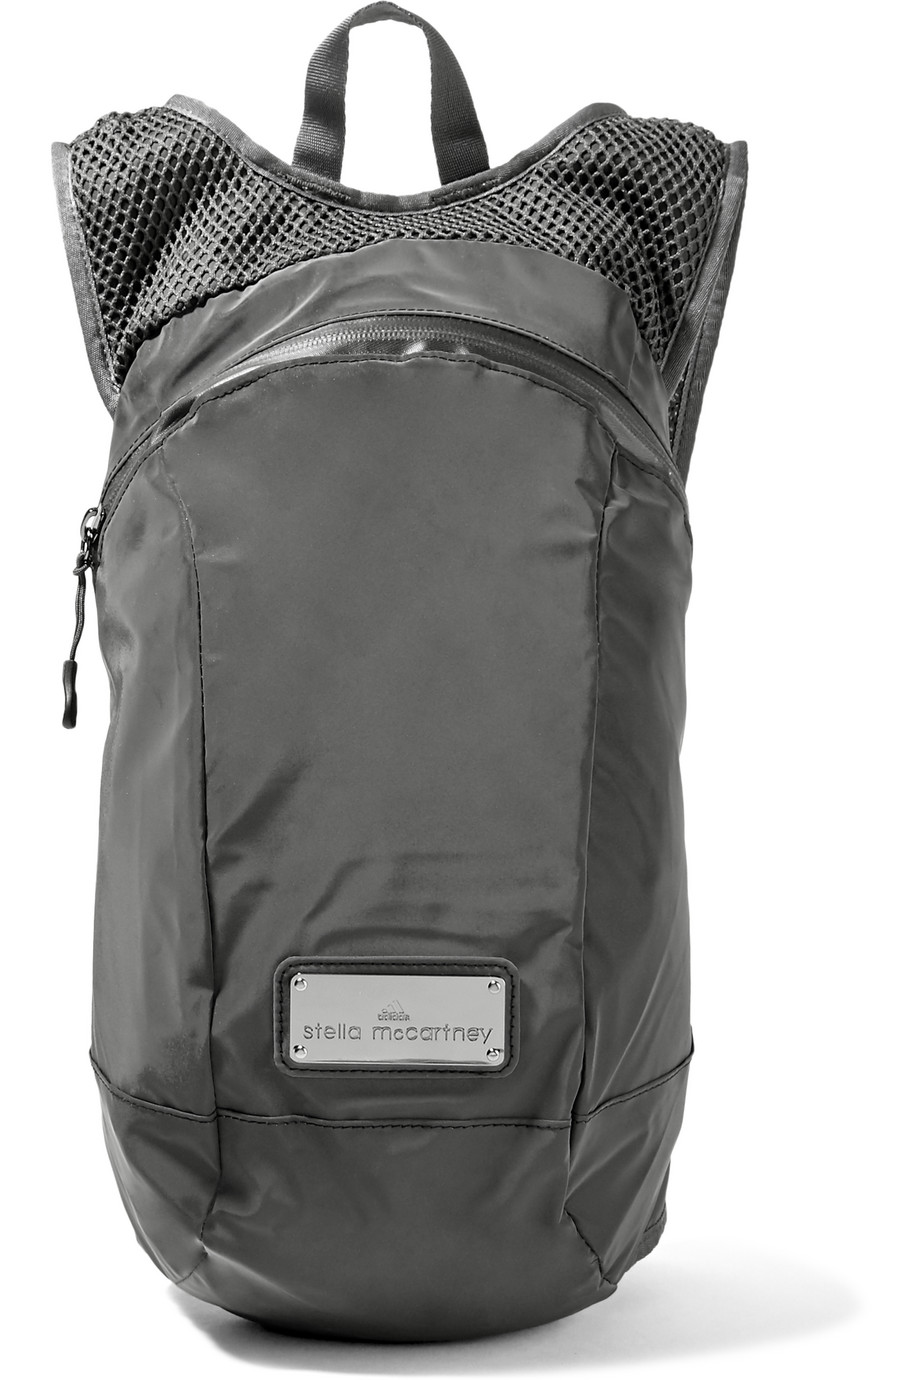 Shell and Mesh Backpack, Adidas by Stella Mccartney, Size: One size